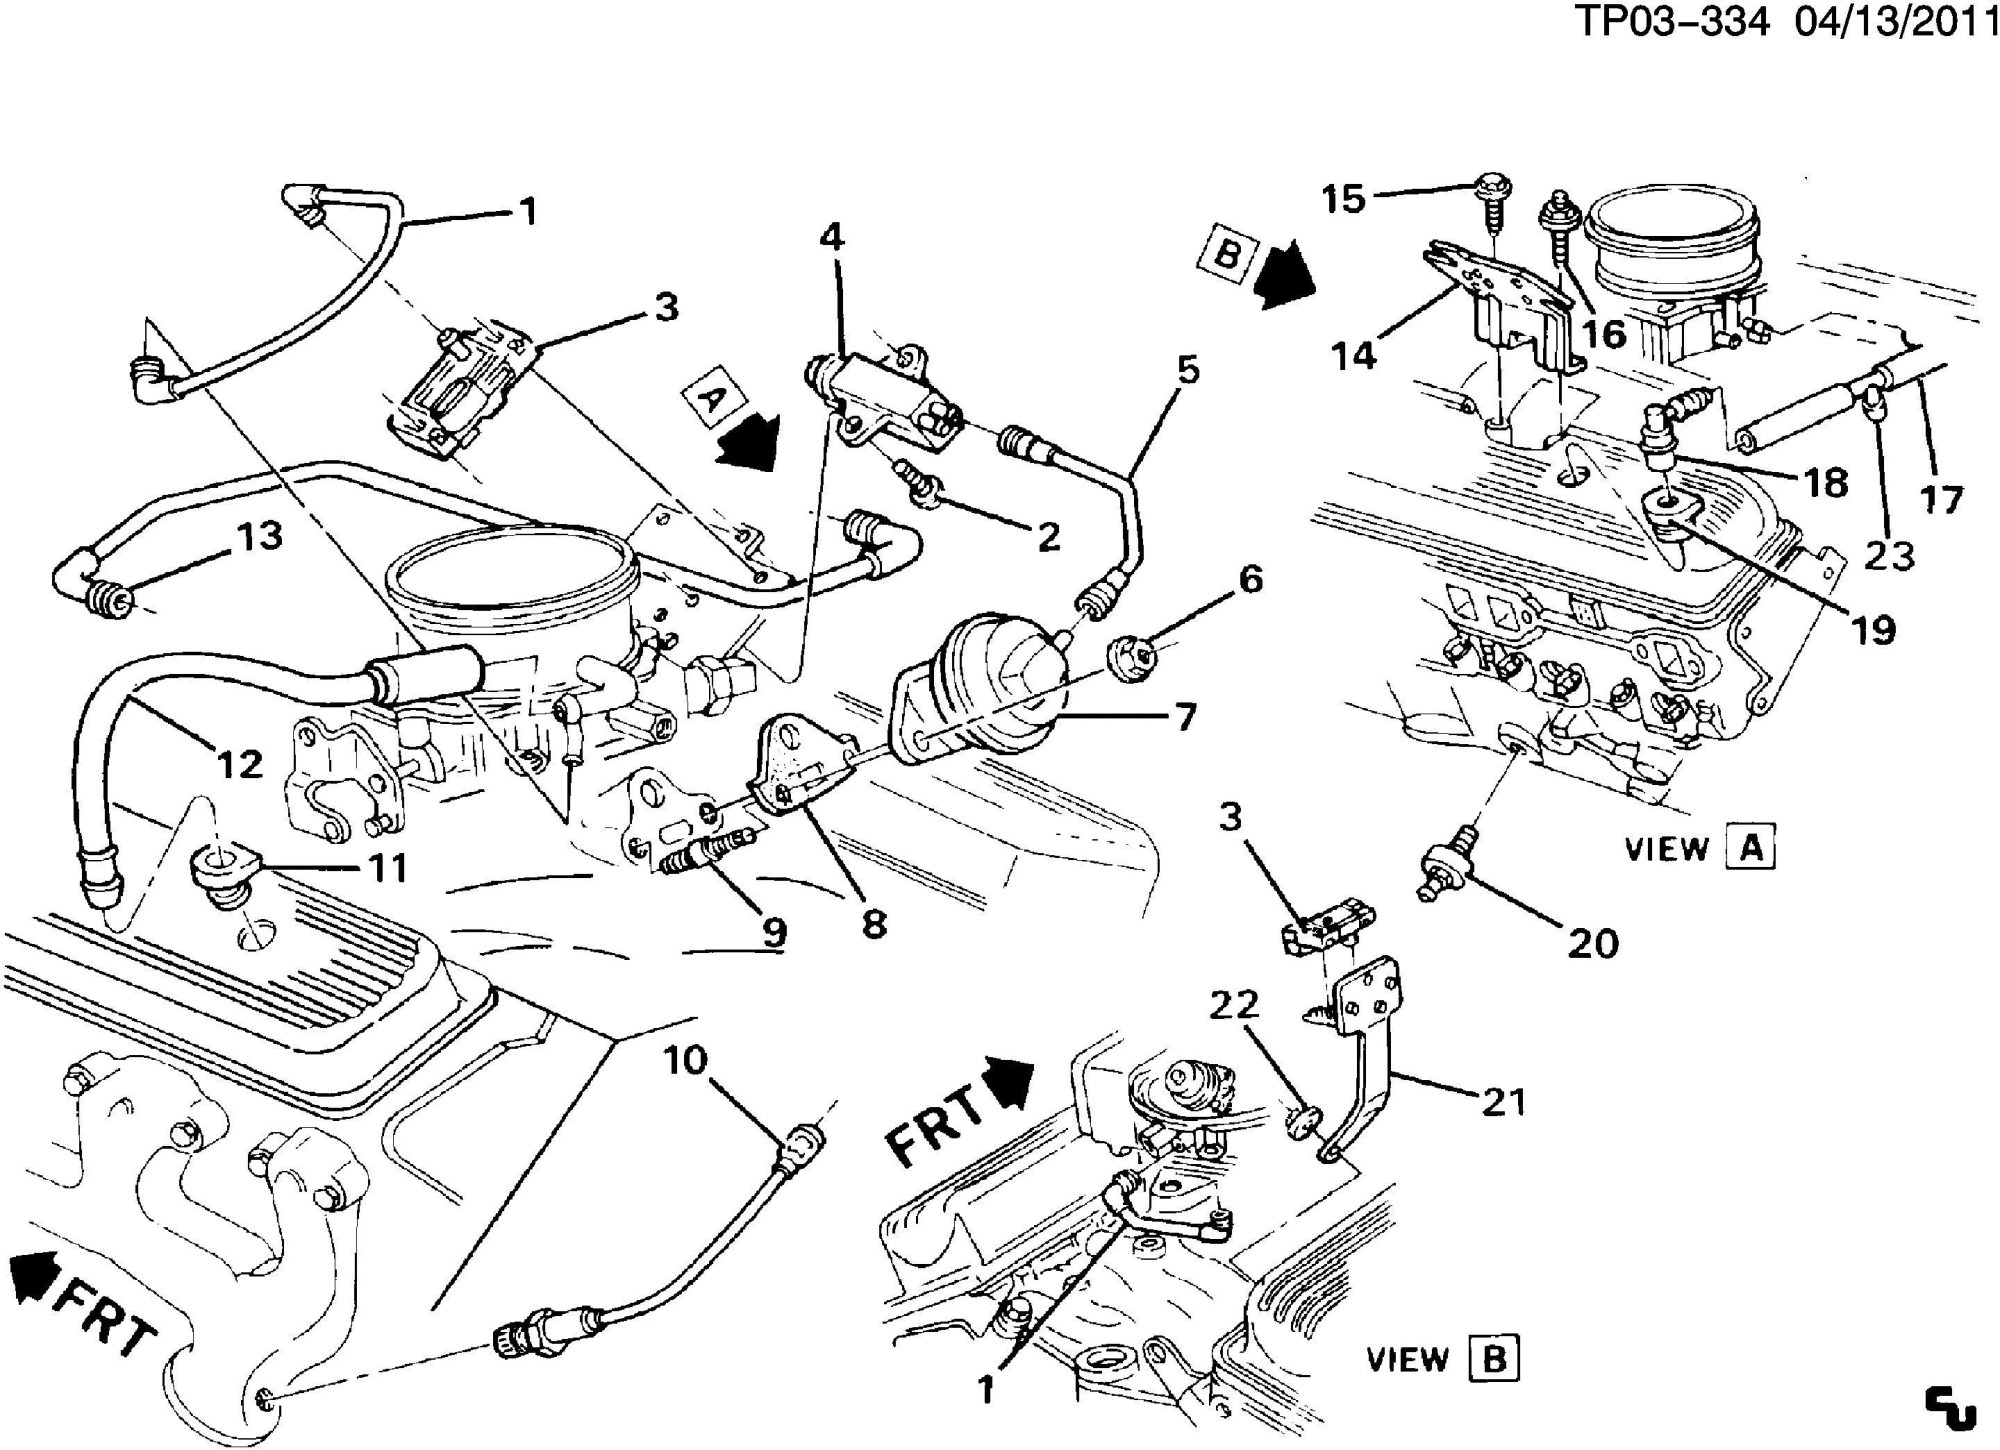 hight resolution of 1990 chevy 350 engine diagram wiring diagram details92 chevy 350 engine diagram 17